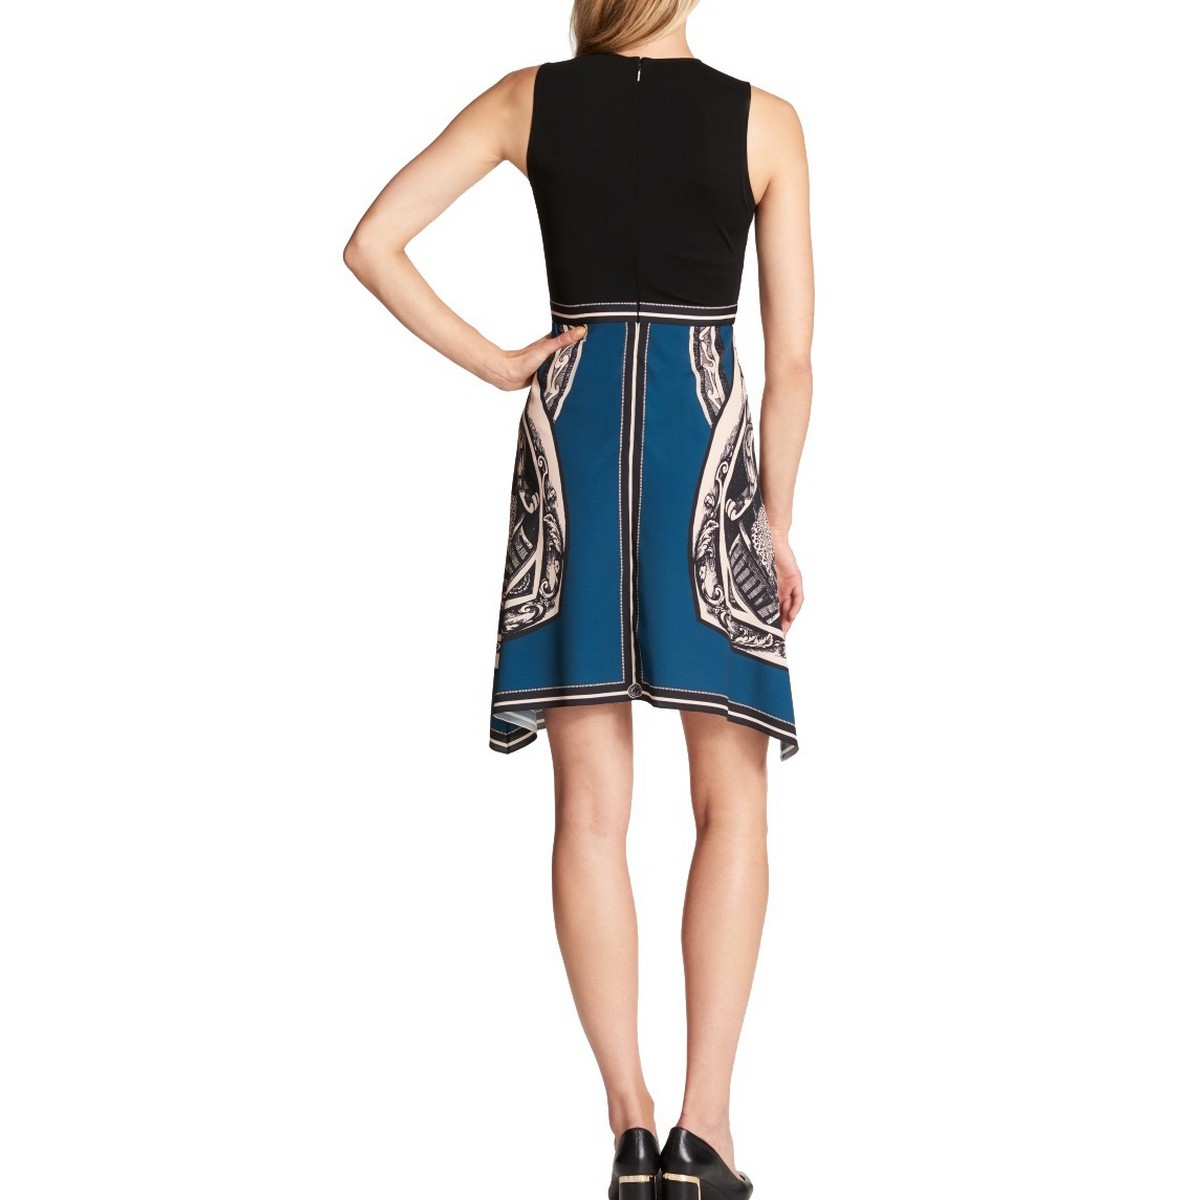 DKNY-NEW-Women-039-s-Printed-Wear-To-Work-Fit-amp-Flare-Dress-TEDO thumbnail 4